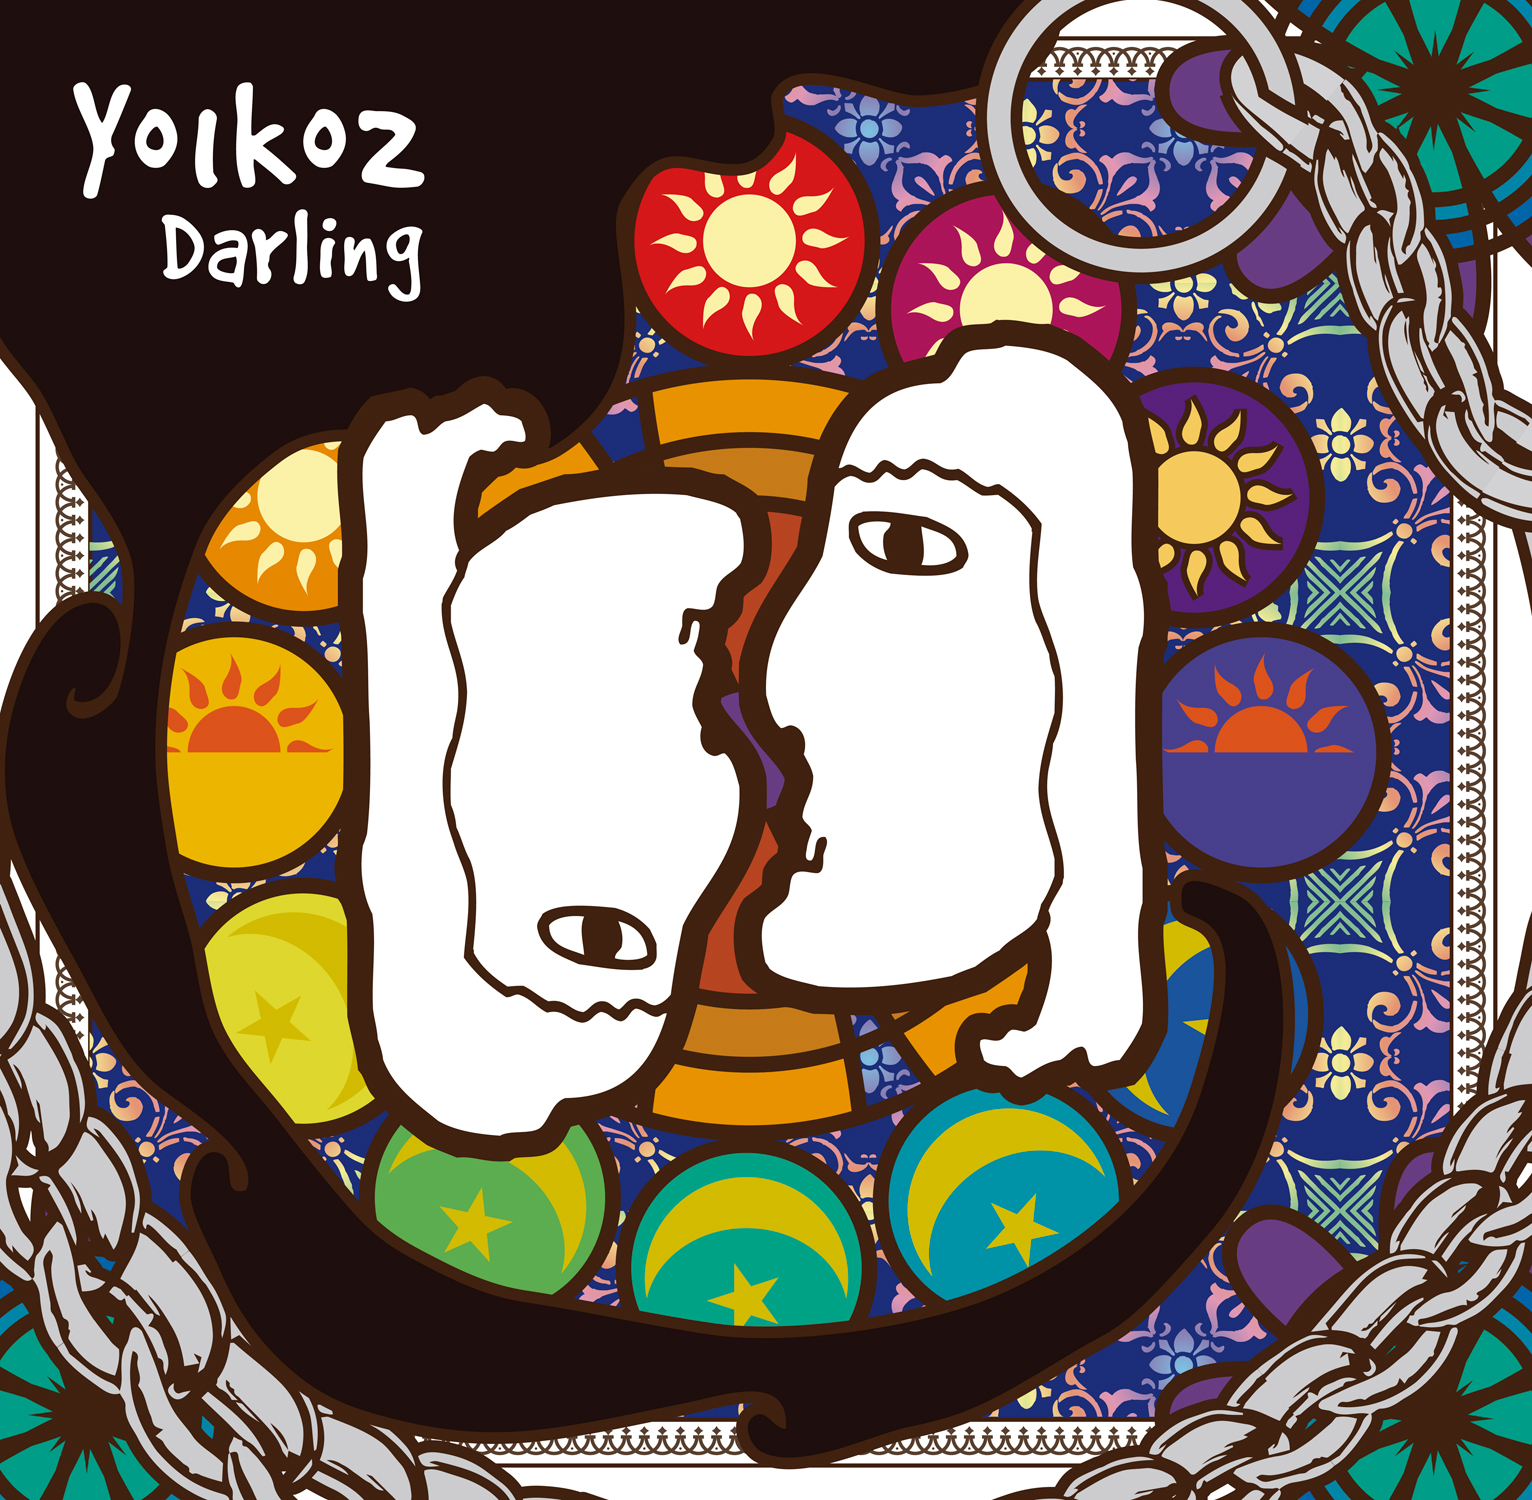 Album Darling 発売再開